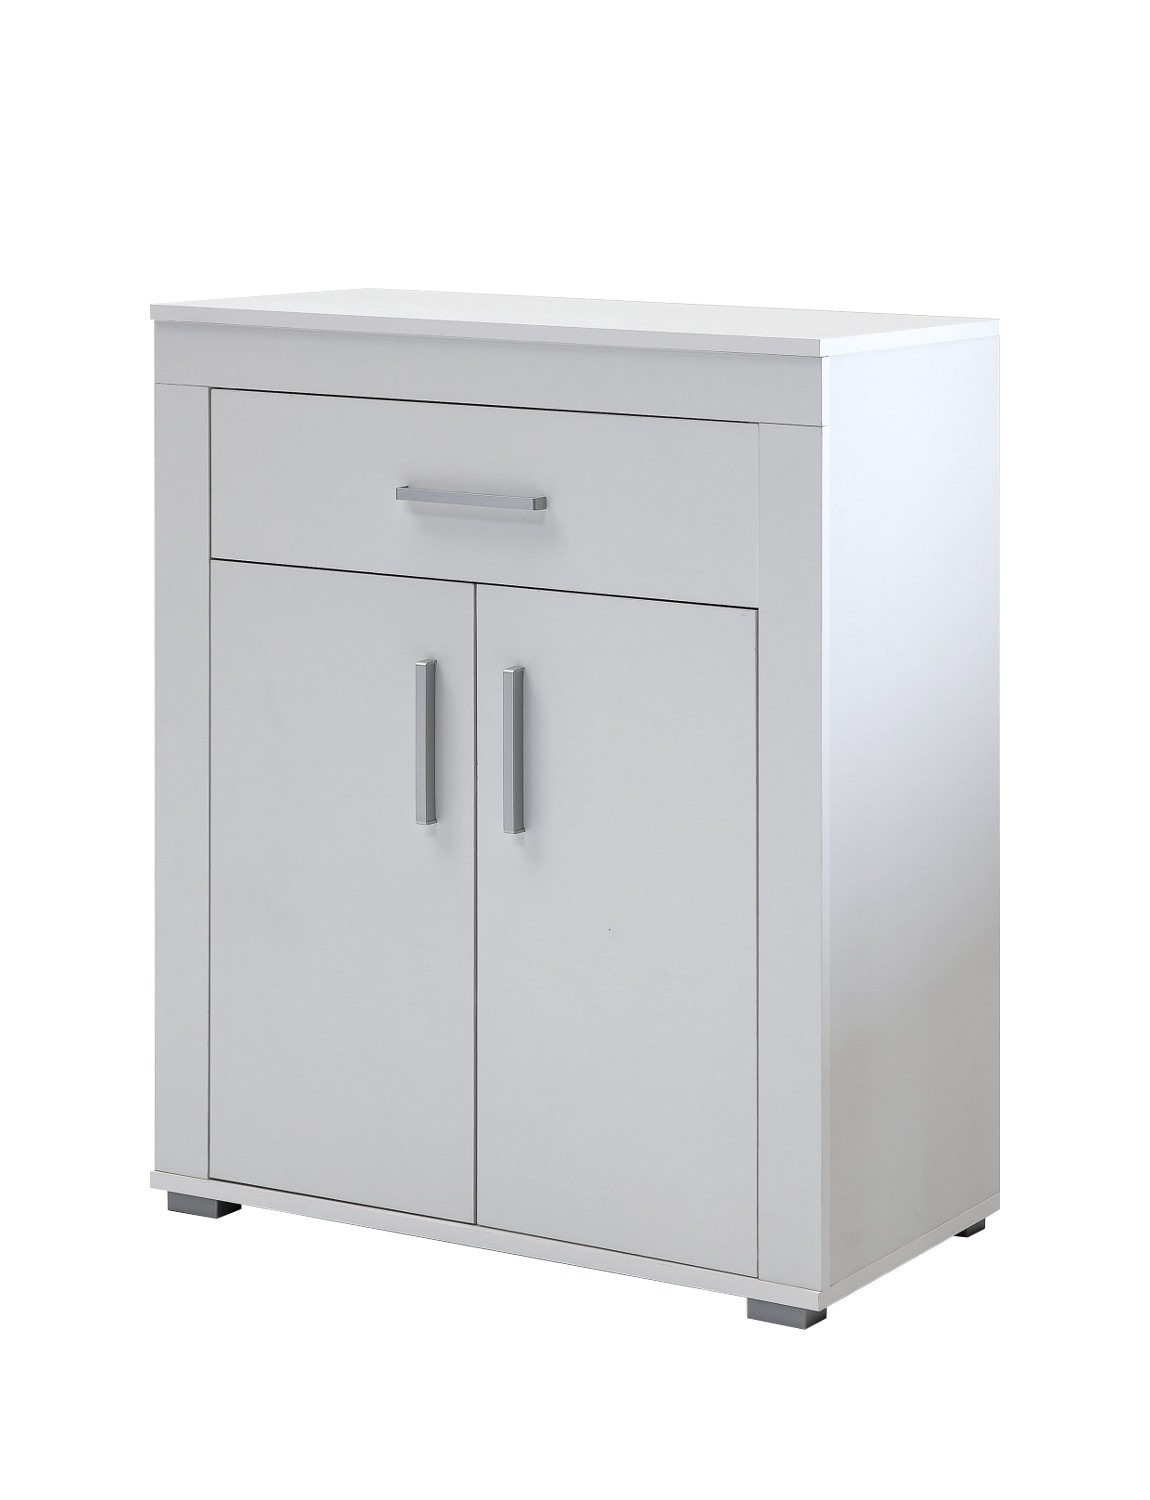 kommode lake schuhschrank garderobe mit schublade und 2 t ren 70 cm weiss ebay. Black Bedroom Furniture Sets. Home Design Ideas